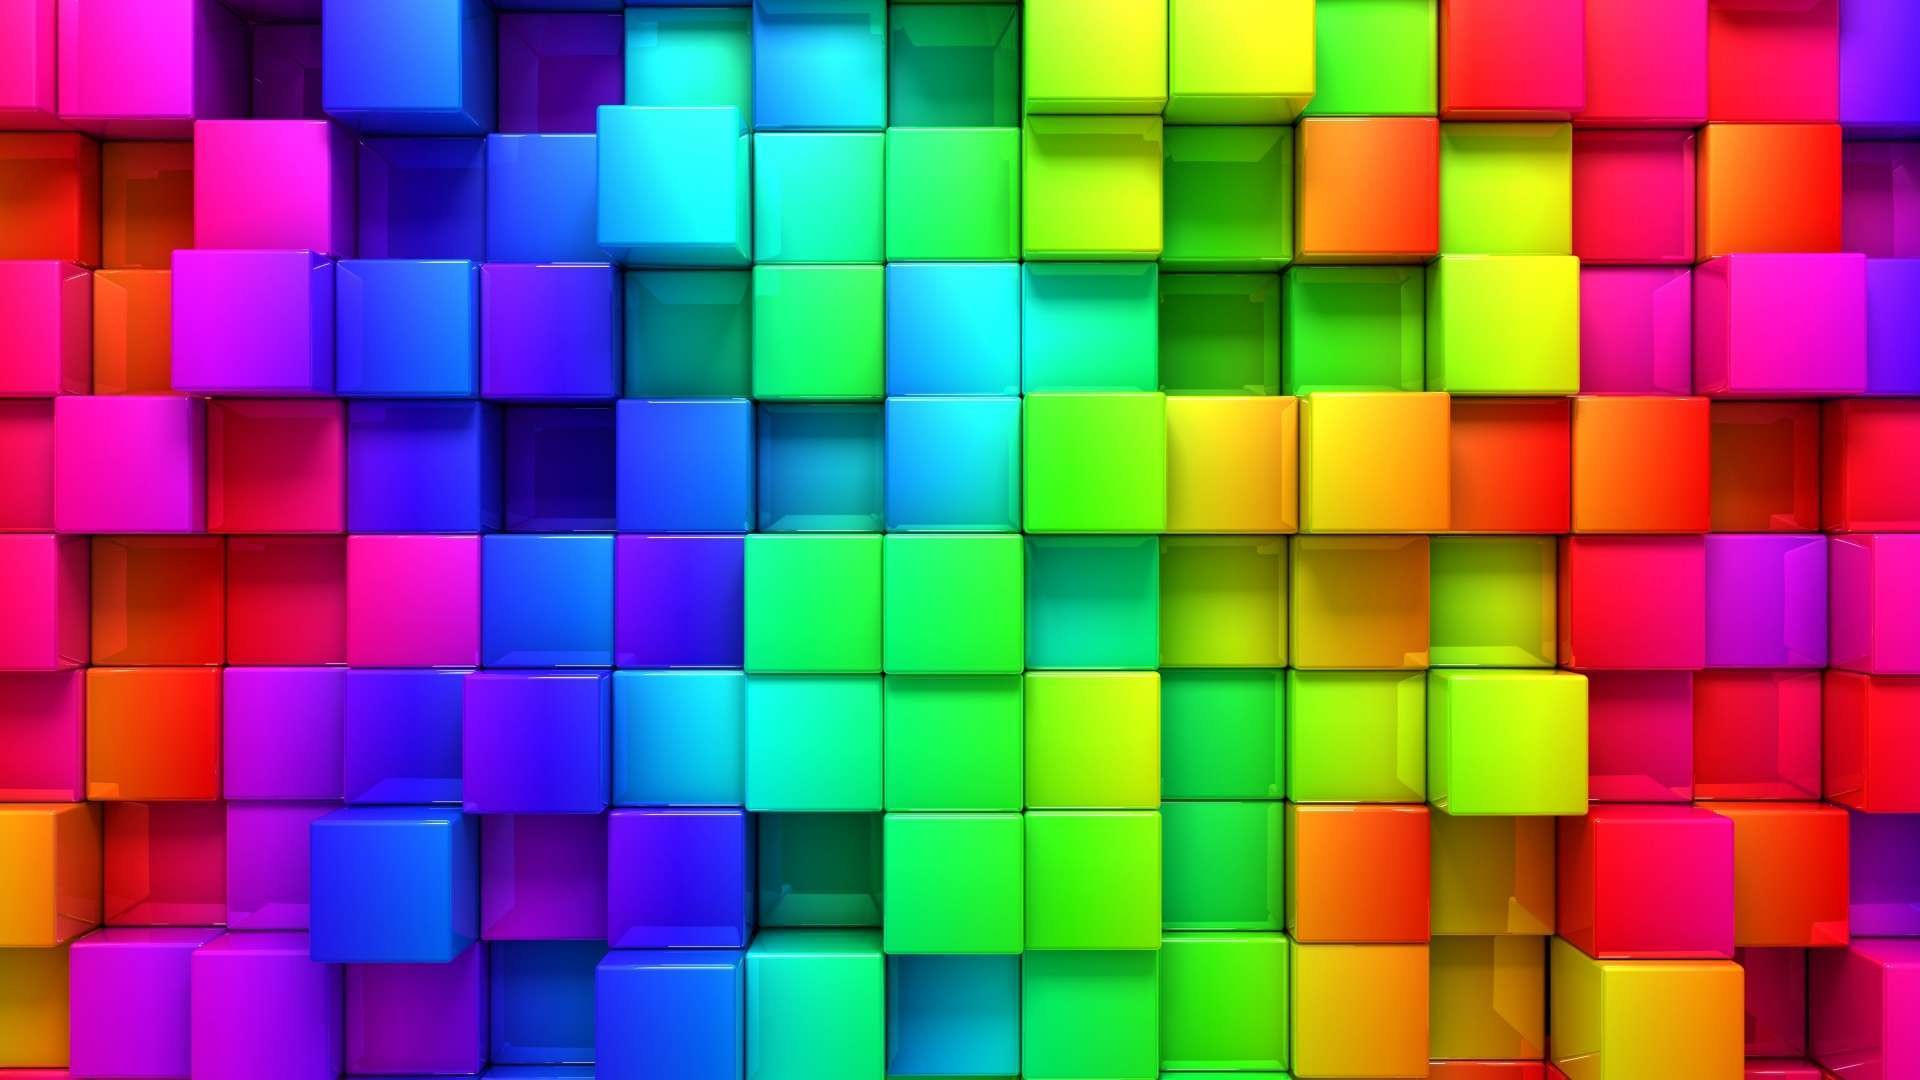 Rainbow HD Desktop Wallpapers for Widescreen | HD Wallpapers | Pinterest | Rainbow  wallpaper, Hd wallpaper and Rainbows